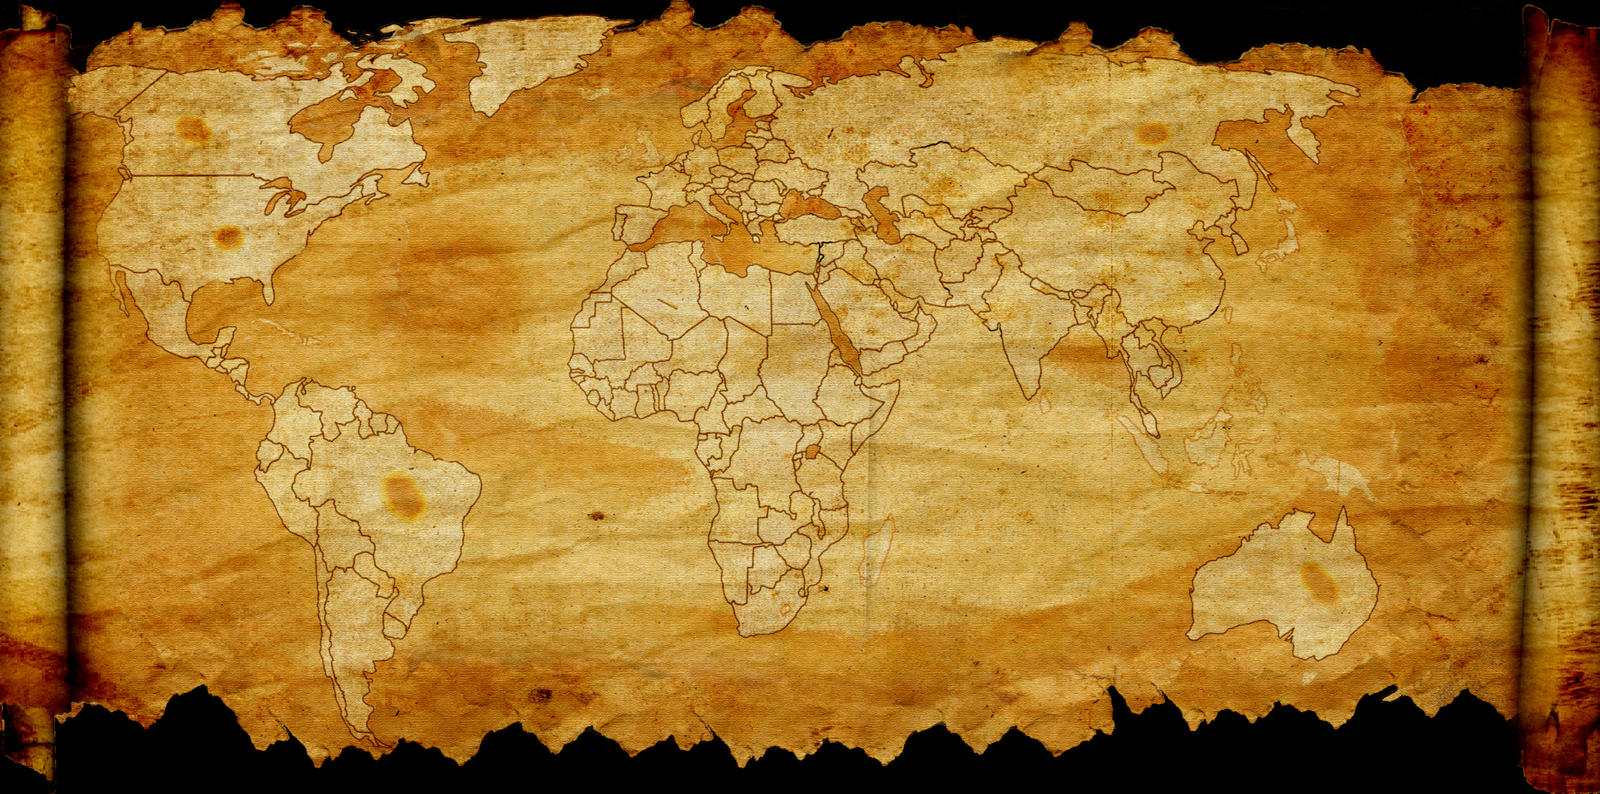 Old new world map by plamber on deviantart old new world map by plamber gumiabroncs Images